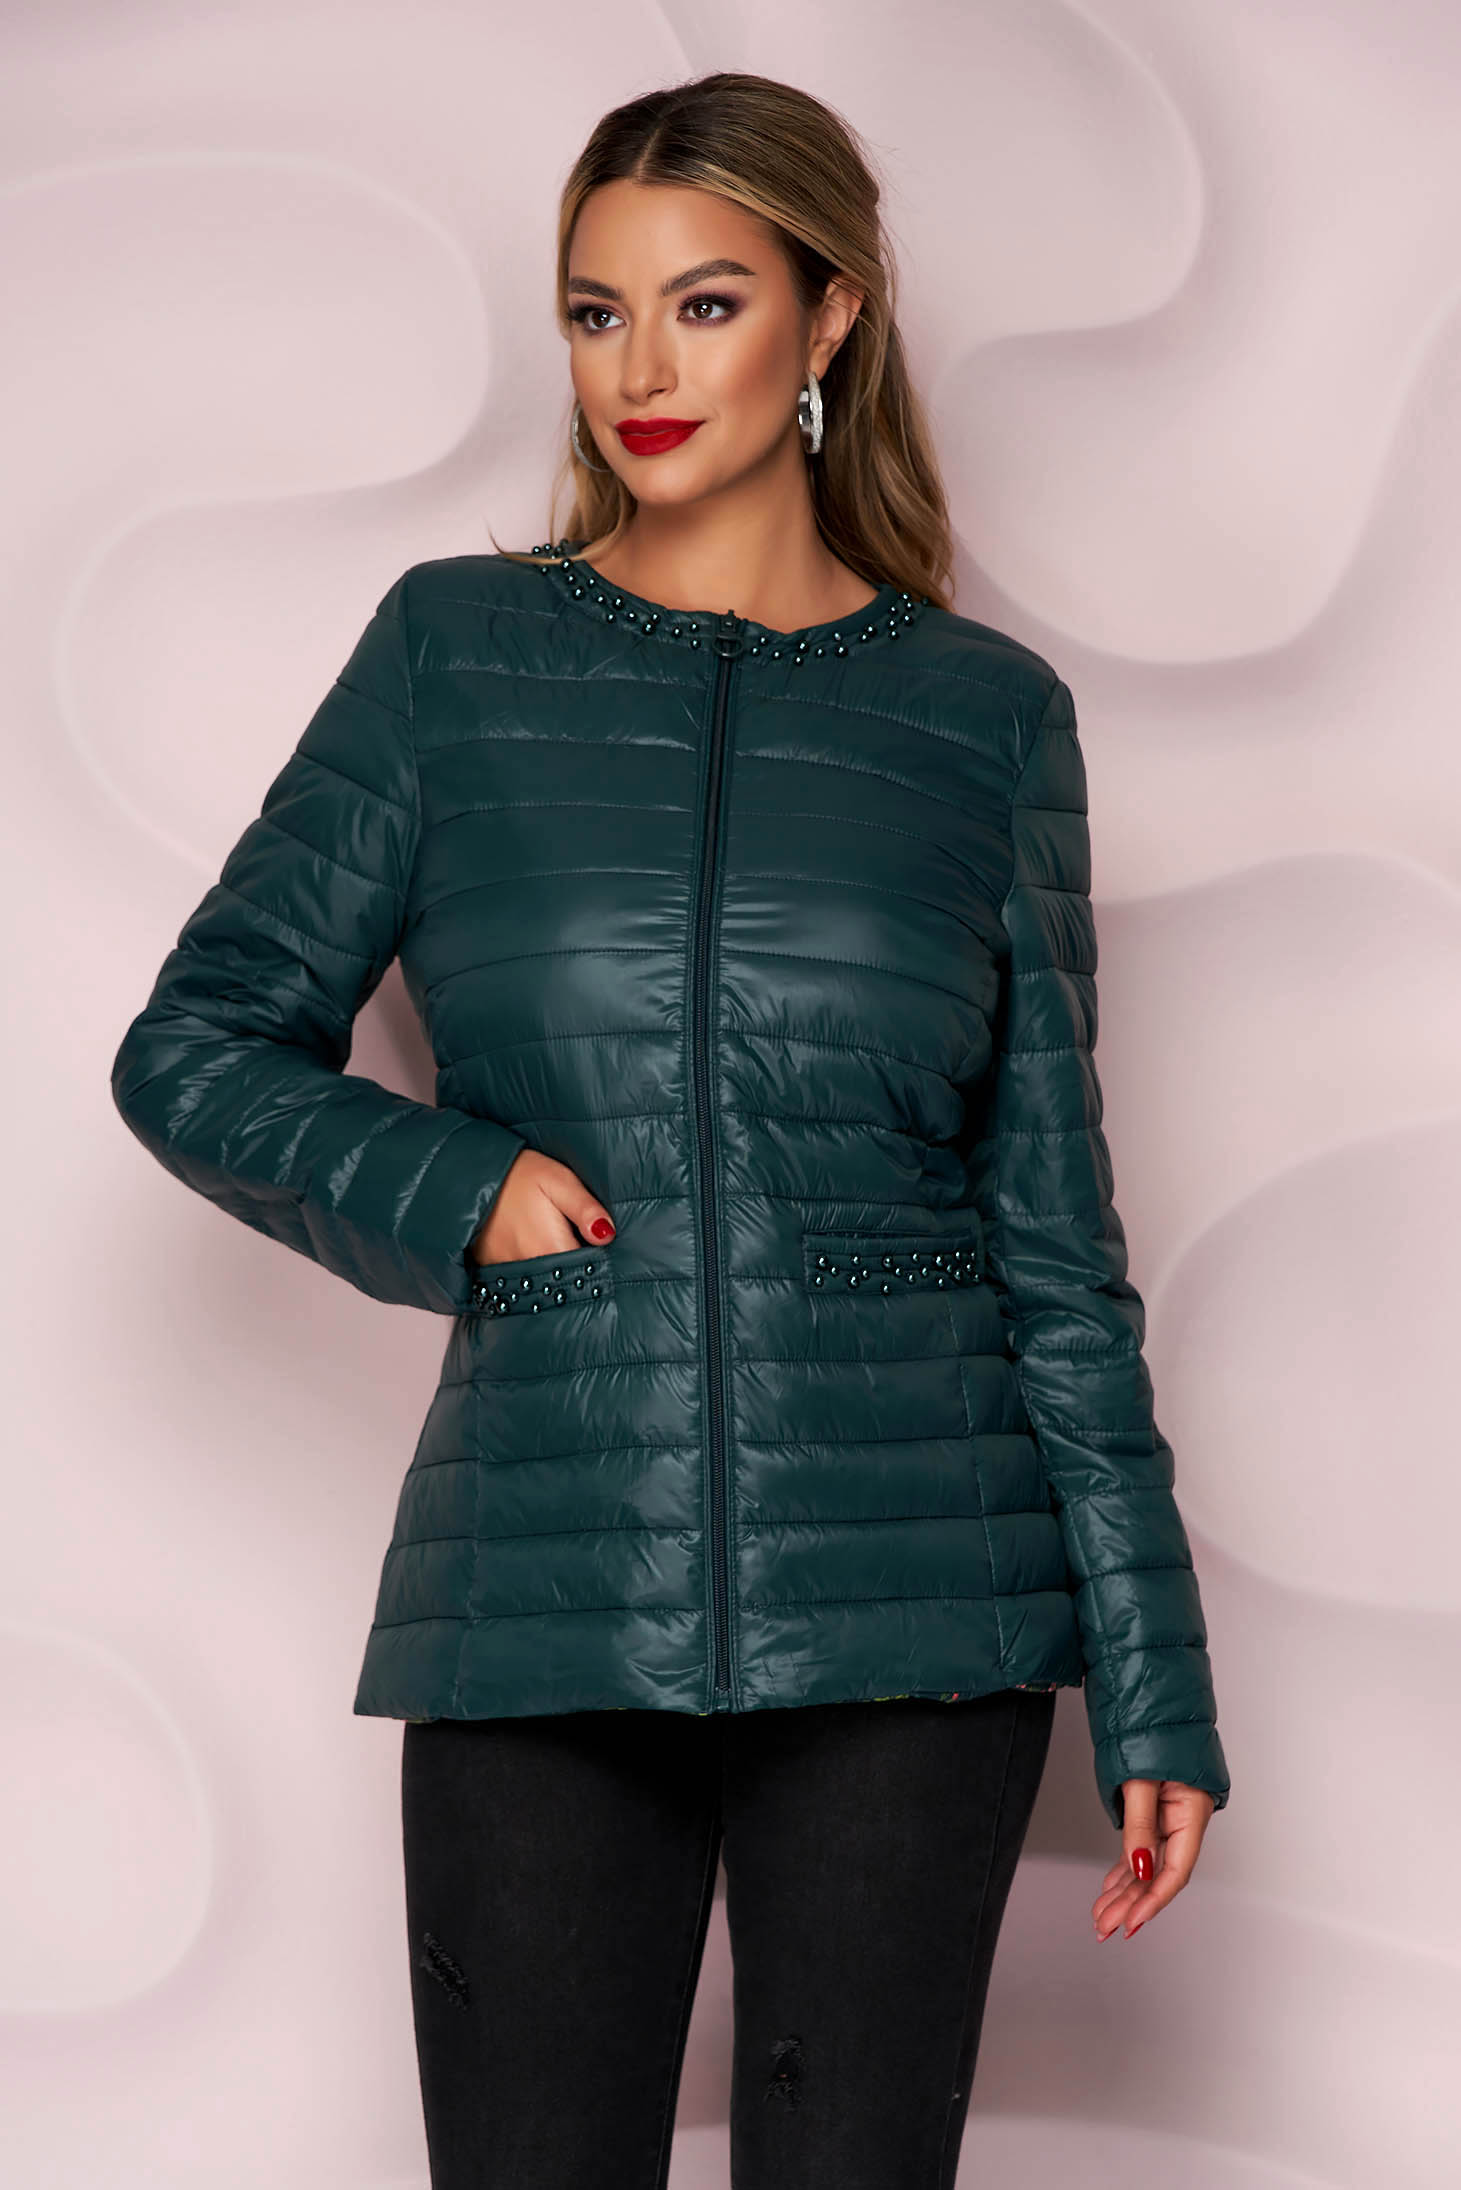 Darkgreen jacket from slicker thin fabric with pearls straight